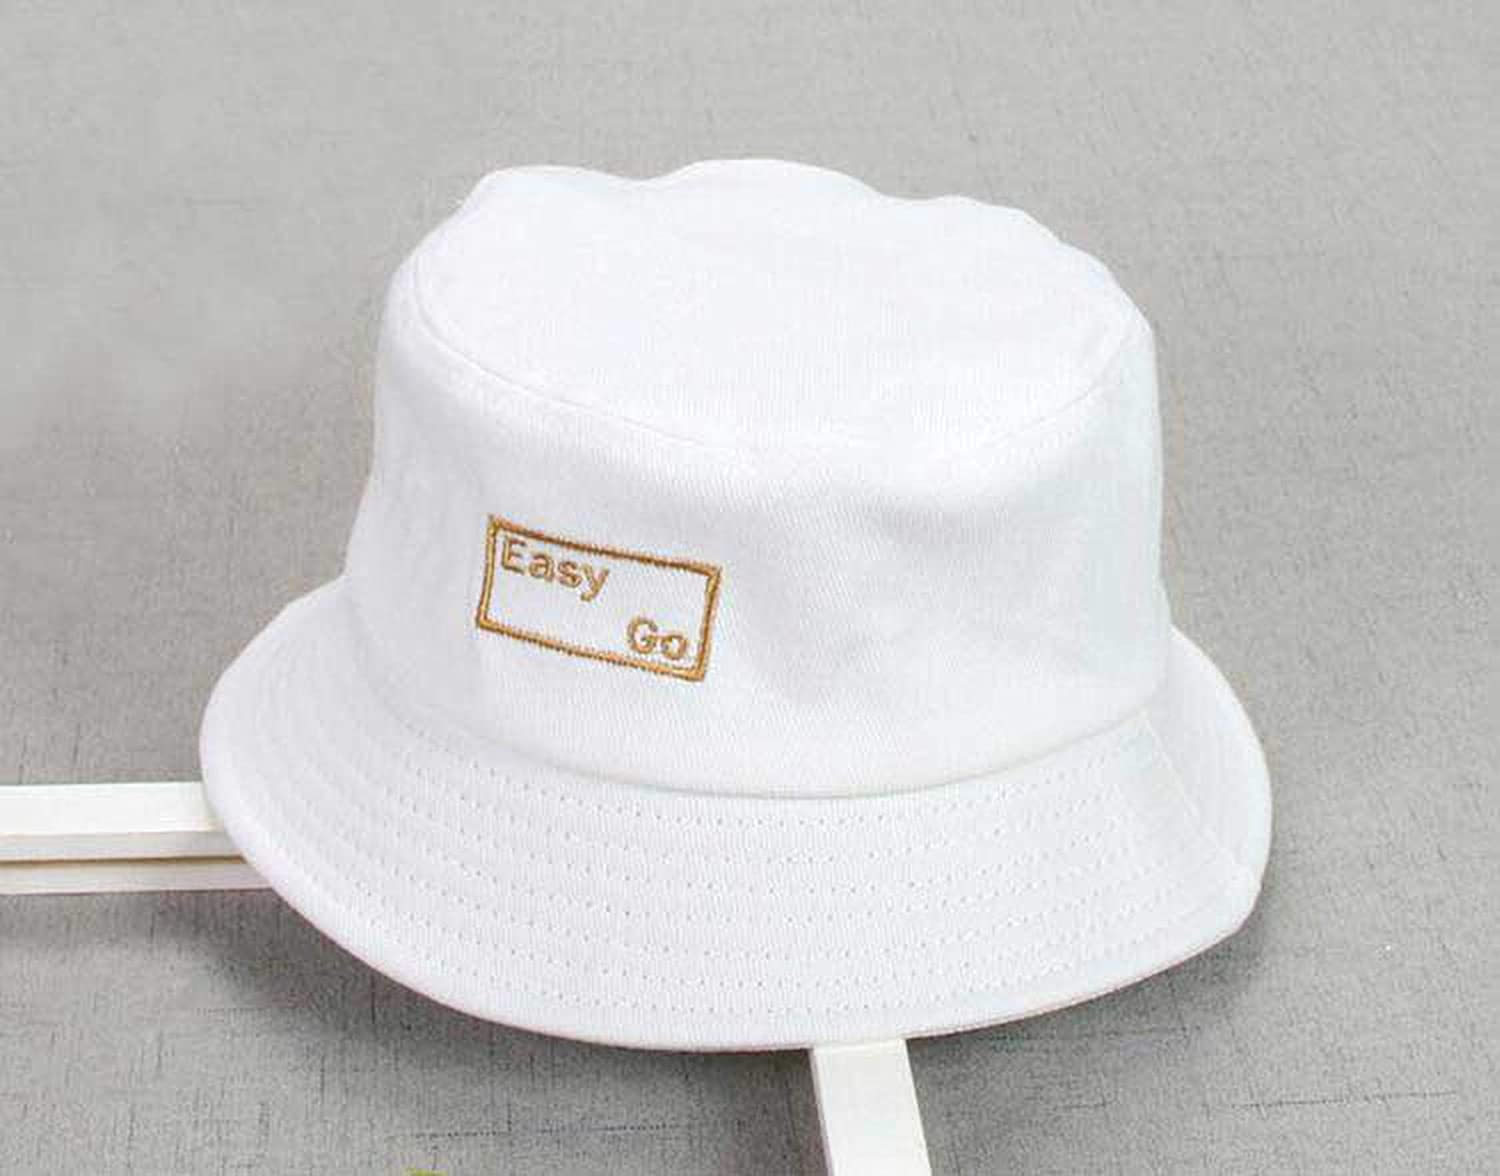 XINBONG Child Unisex Dome Hat Cotton Fisherman Outdoor Embroidery Spring Beach Hat Boys Girls Kids Summer Child Cap